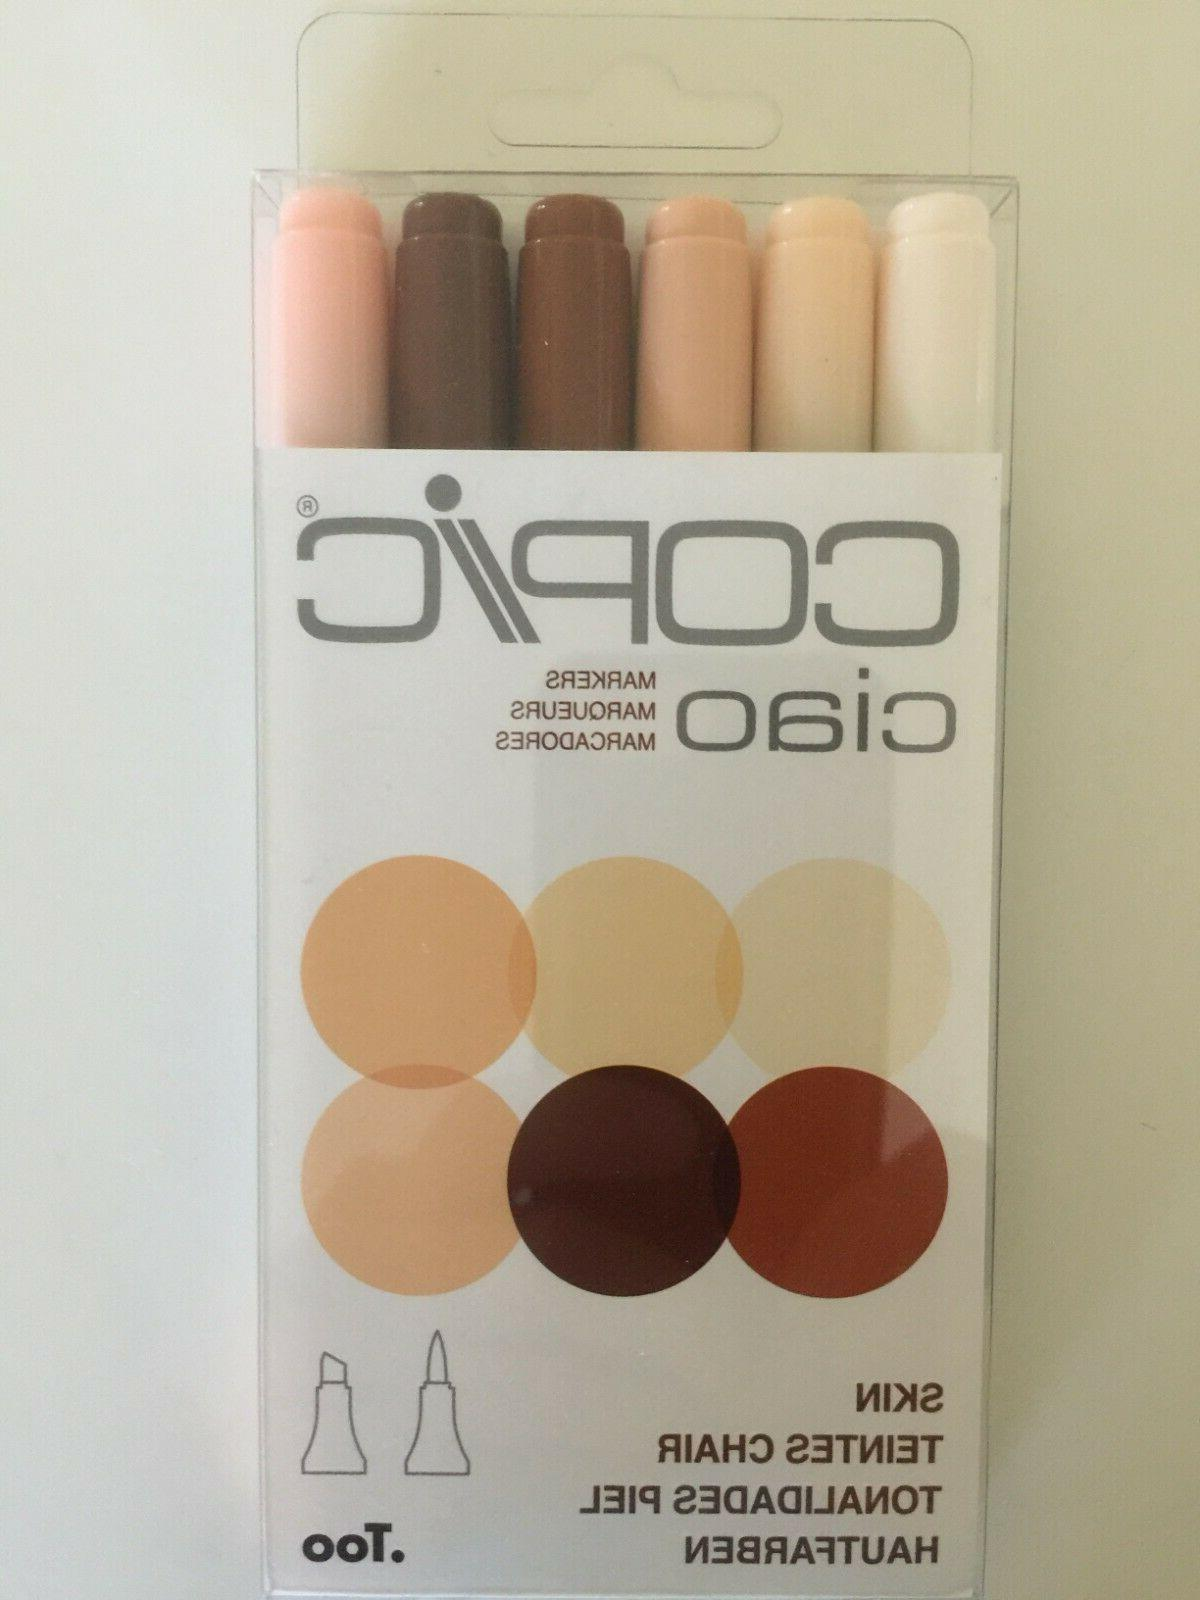 ciao marker pens 6 skin tone colors